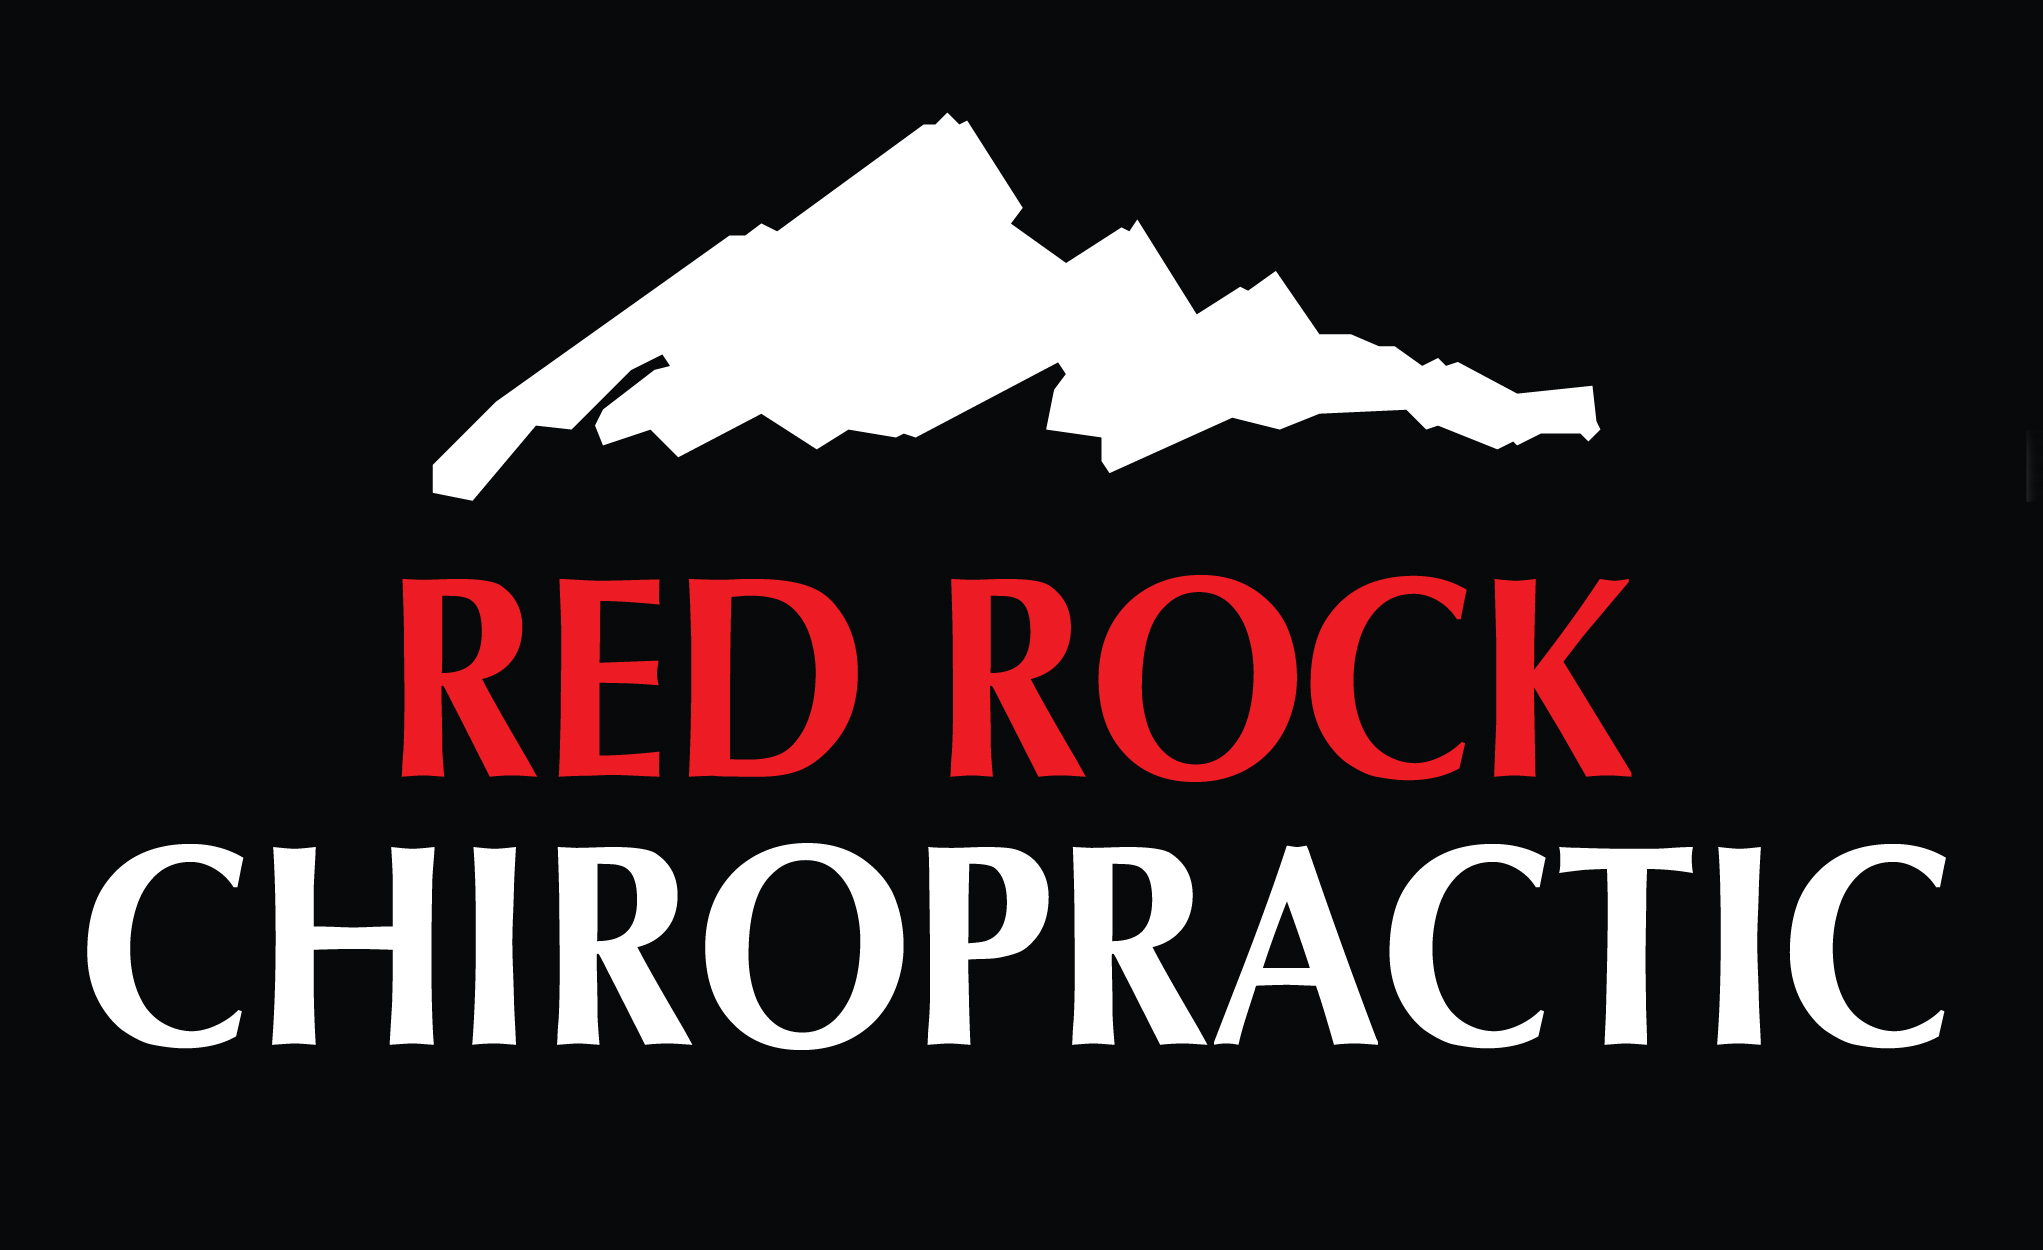 Red Rock Chiropractic & Wellness Center